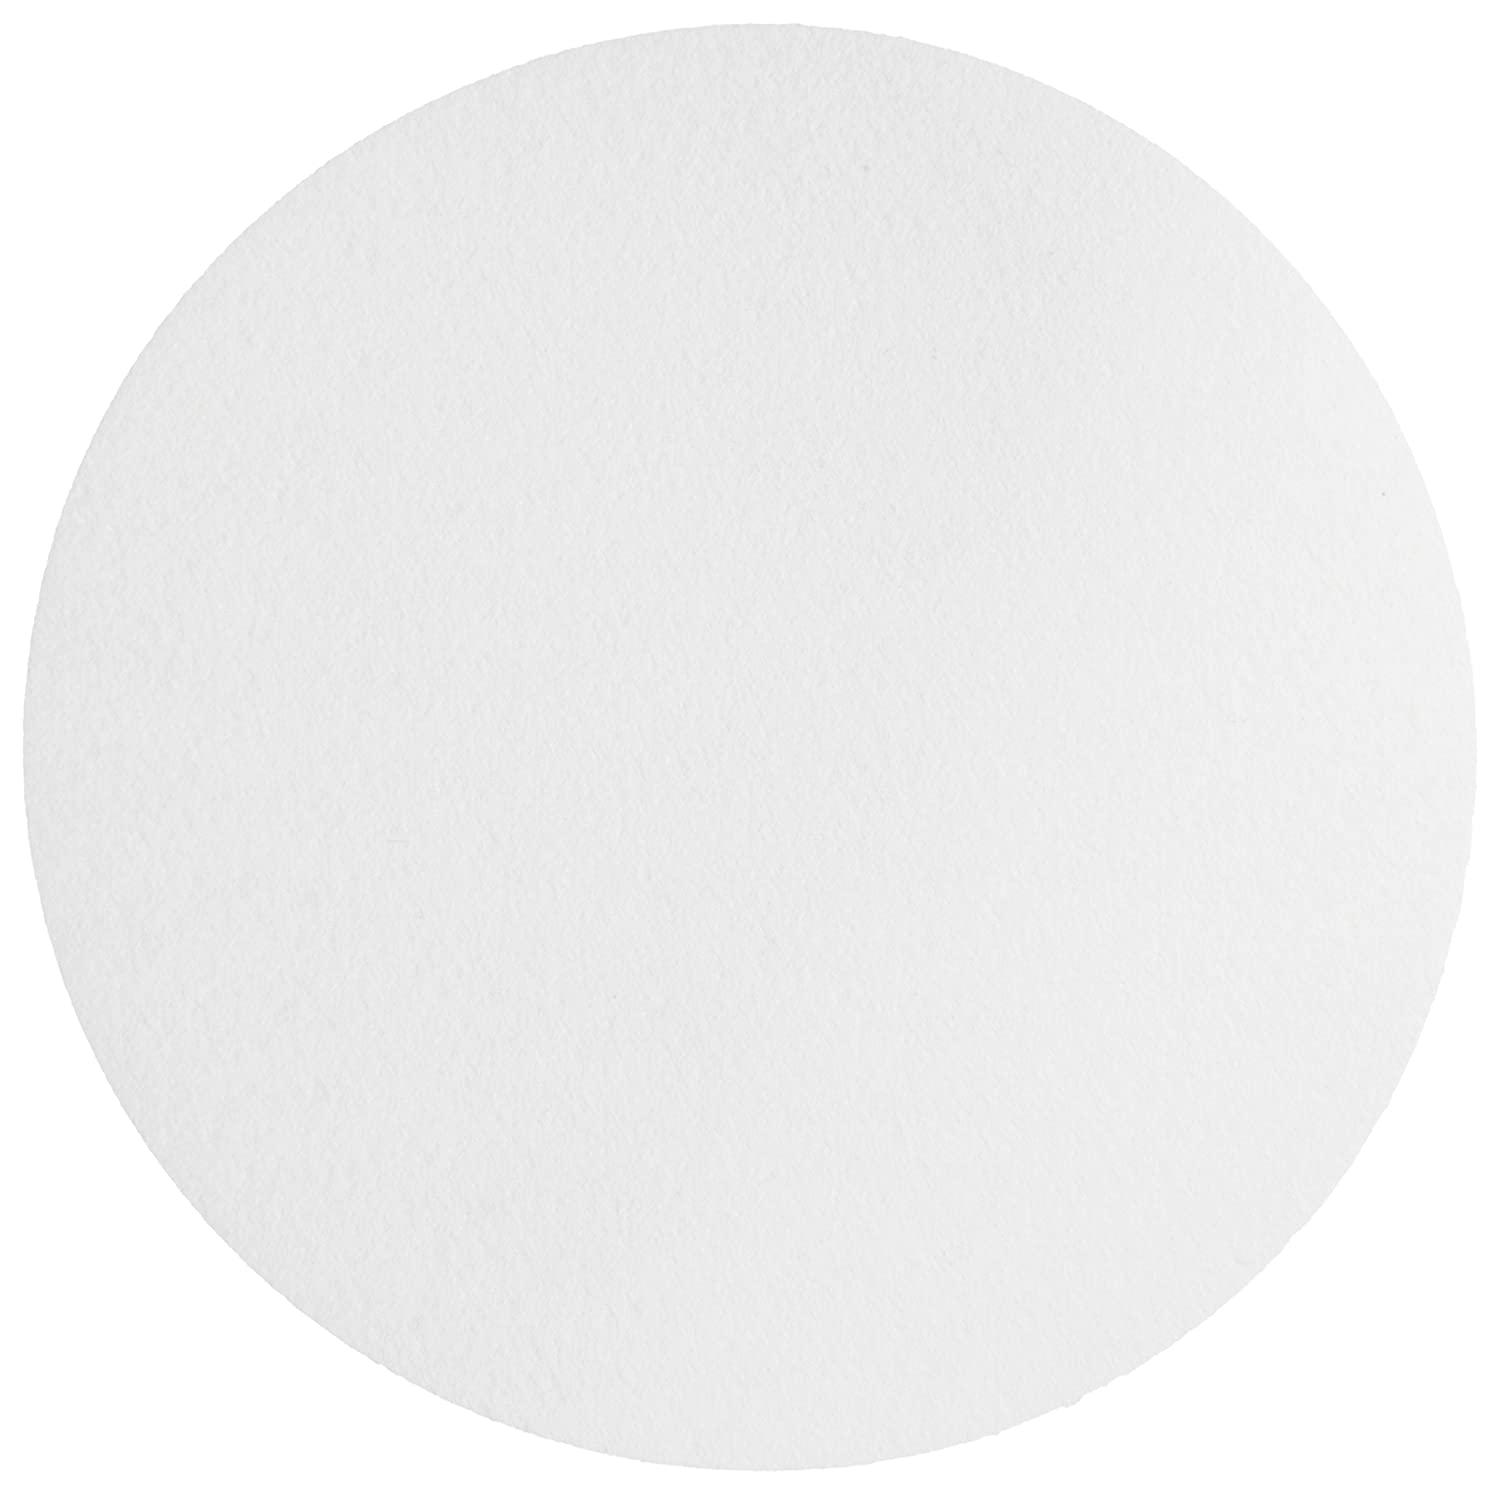 Whatman 1001240 Grade 1 Qualitative Filter Paper Standard, circle, 240 mm (Pack of 100) GE Healthcare F1000-9